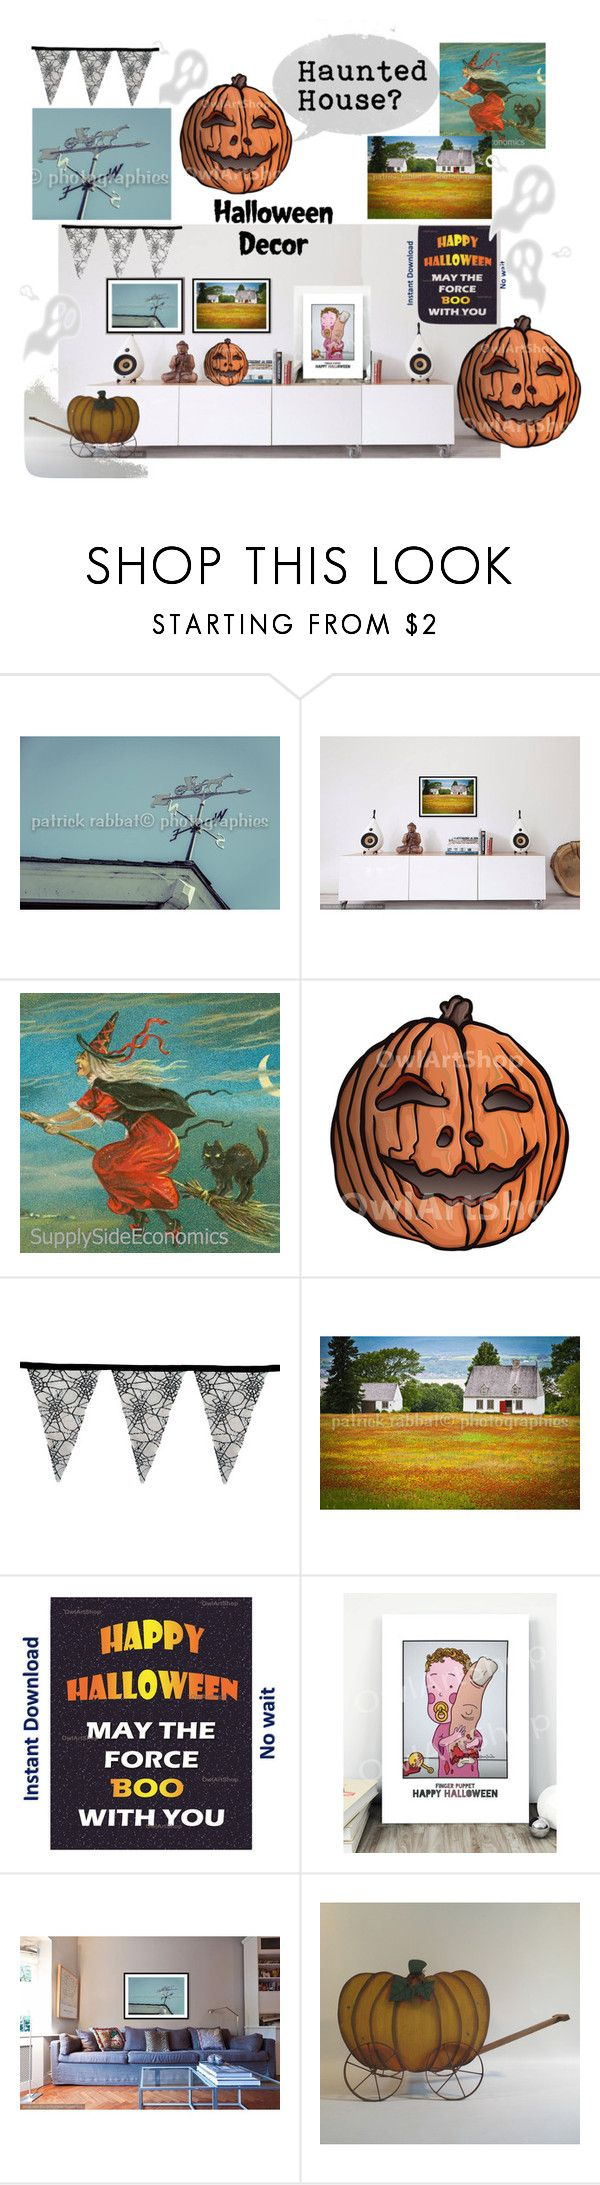 Happy Halloween - Haunted House ?! by owlartshop on Polyvore featuring interior, interiors, interior design, home, home decor, interior decorating, Halloween, art and decor